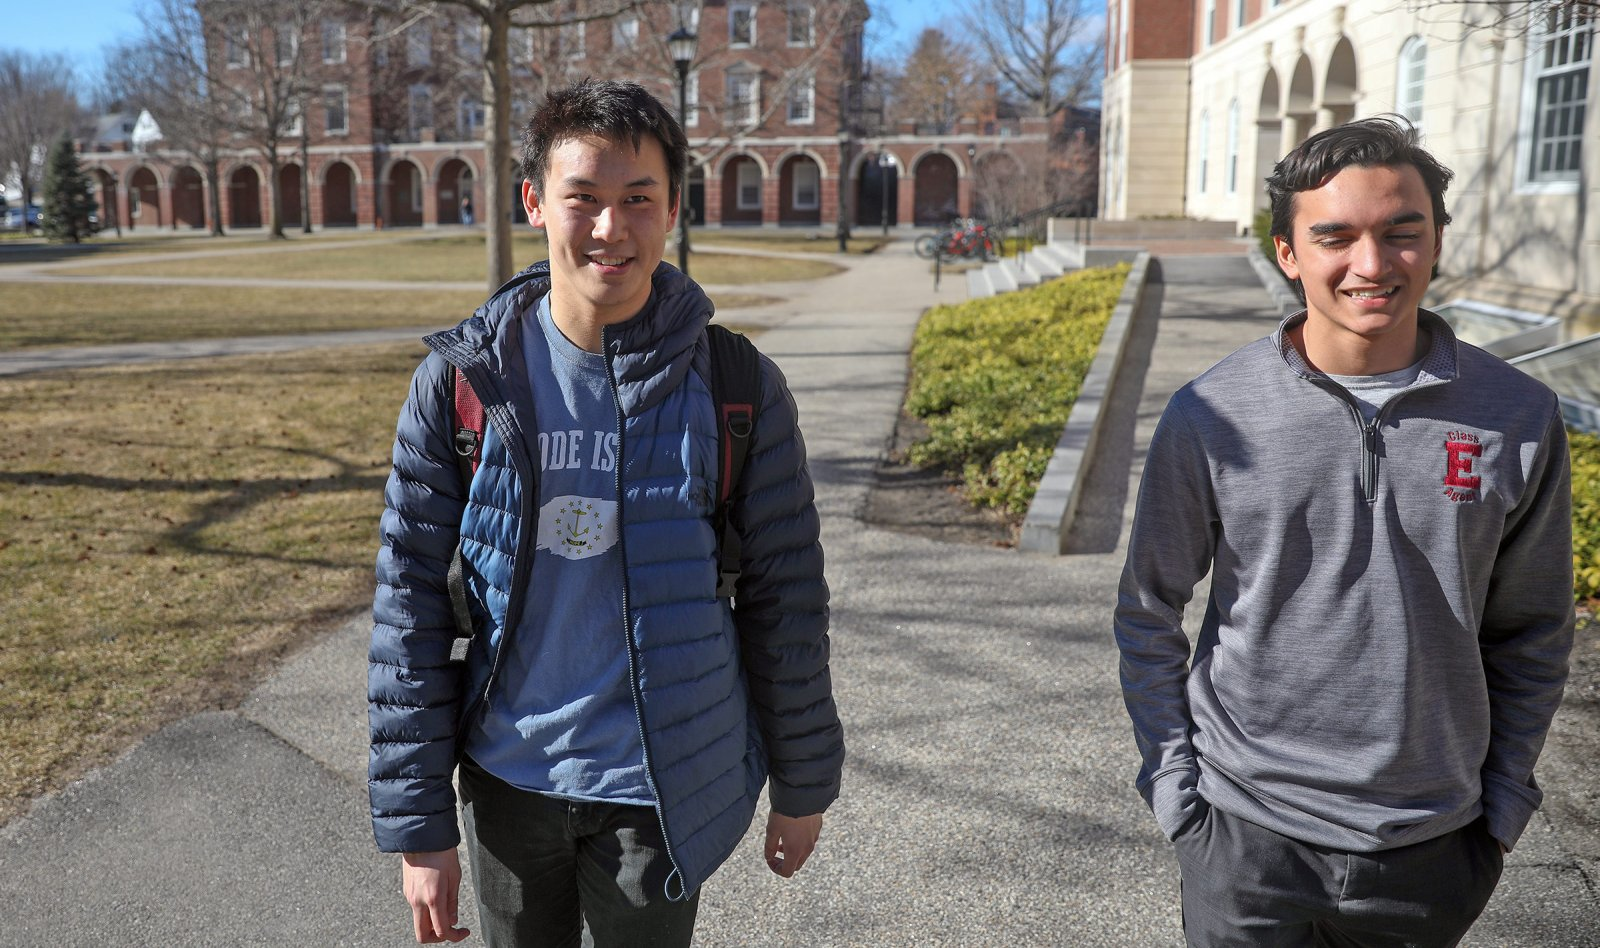 Ben Cai smiling as he walks the paths of Exeter's campus with a friend.